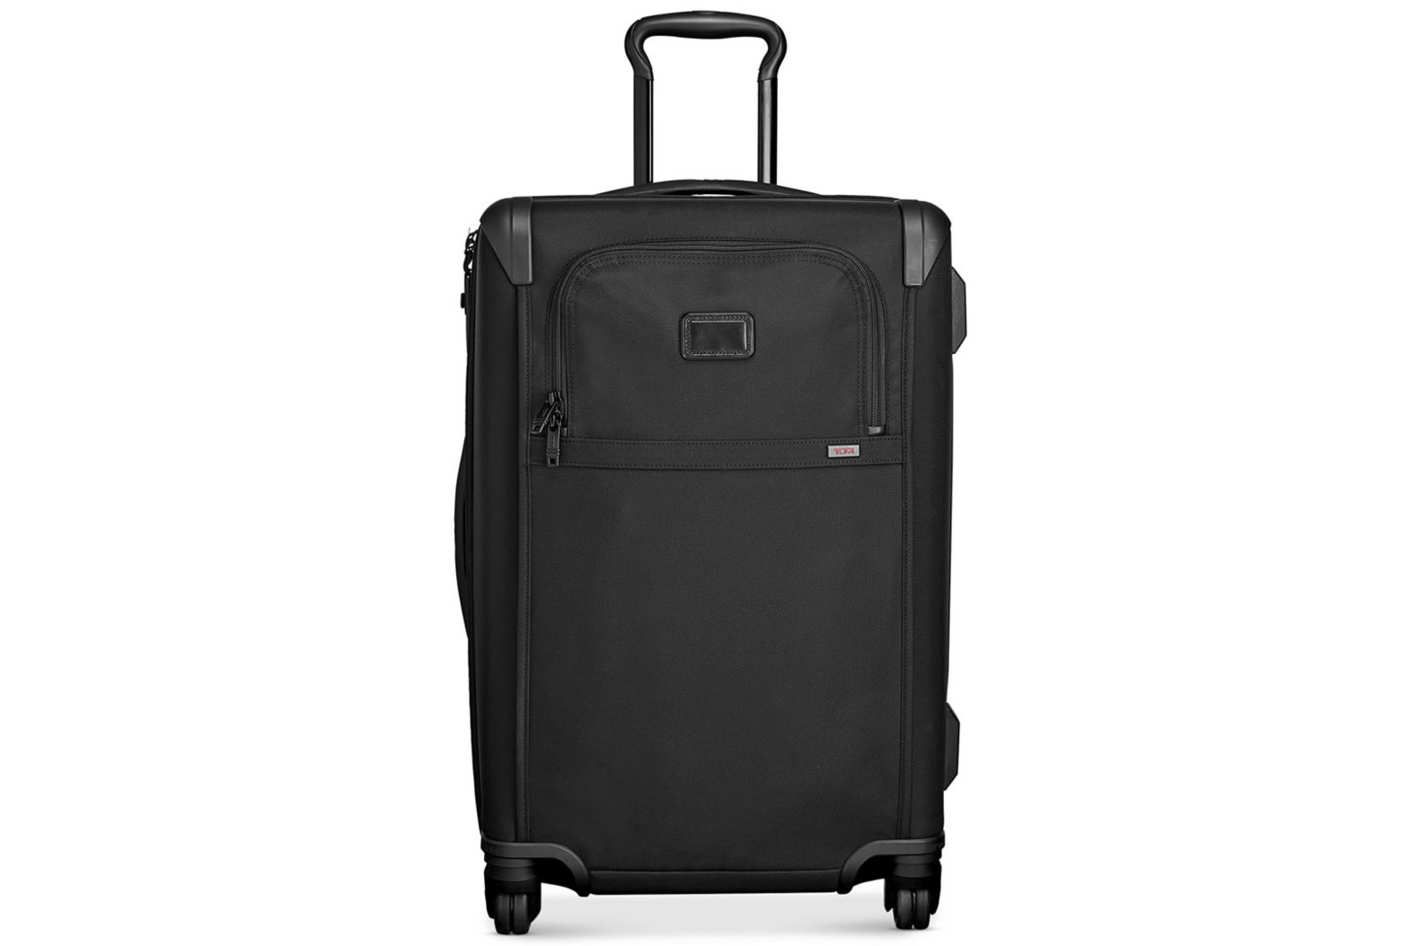 Best Tumi rolling luggage. "